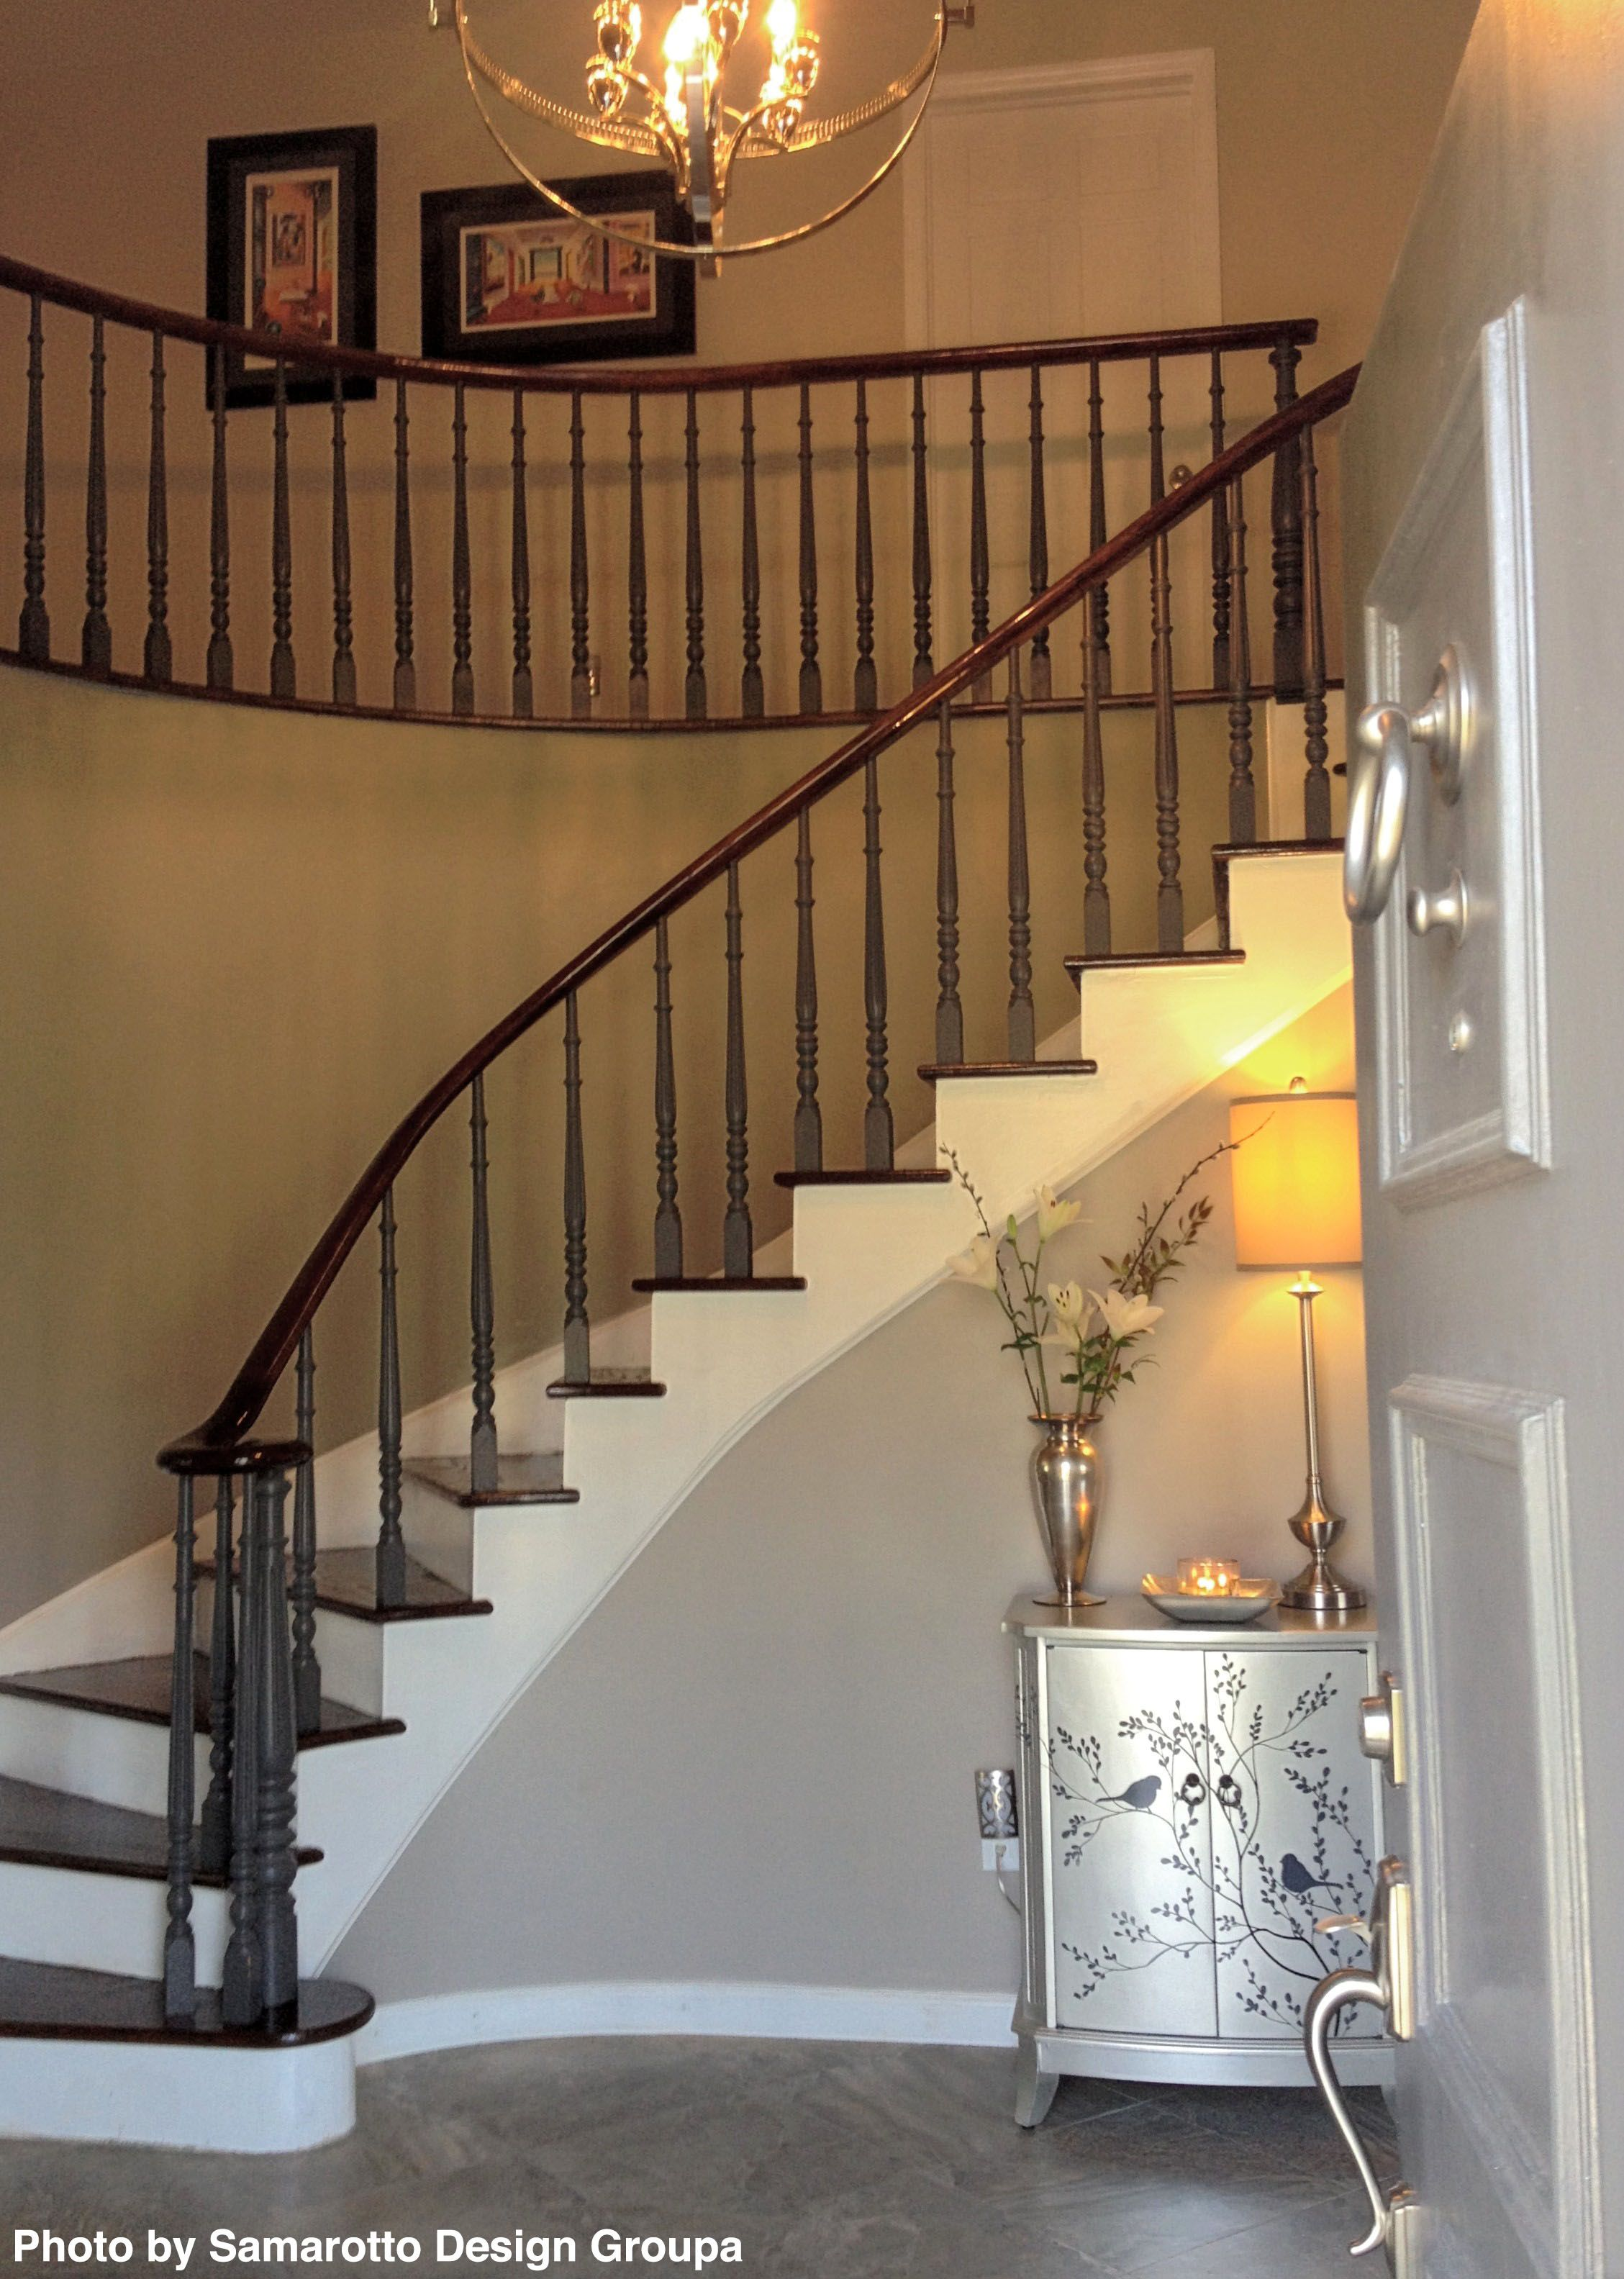 Transitional Curved Staircase With Stained Wood Stairs, Tile Entry Floor And  White Painted Millwork. Tile And Hardwood Do Go Well Together.